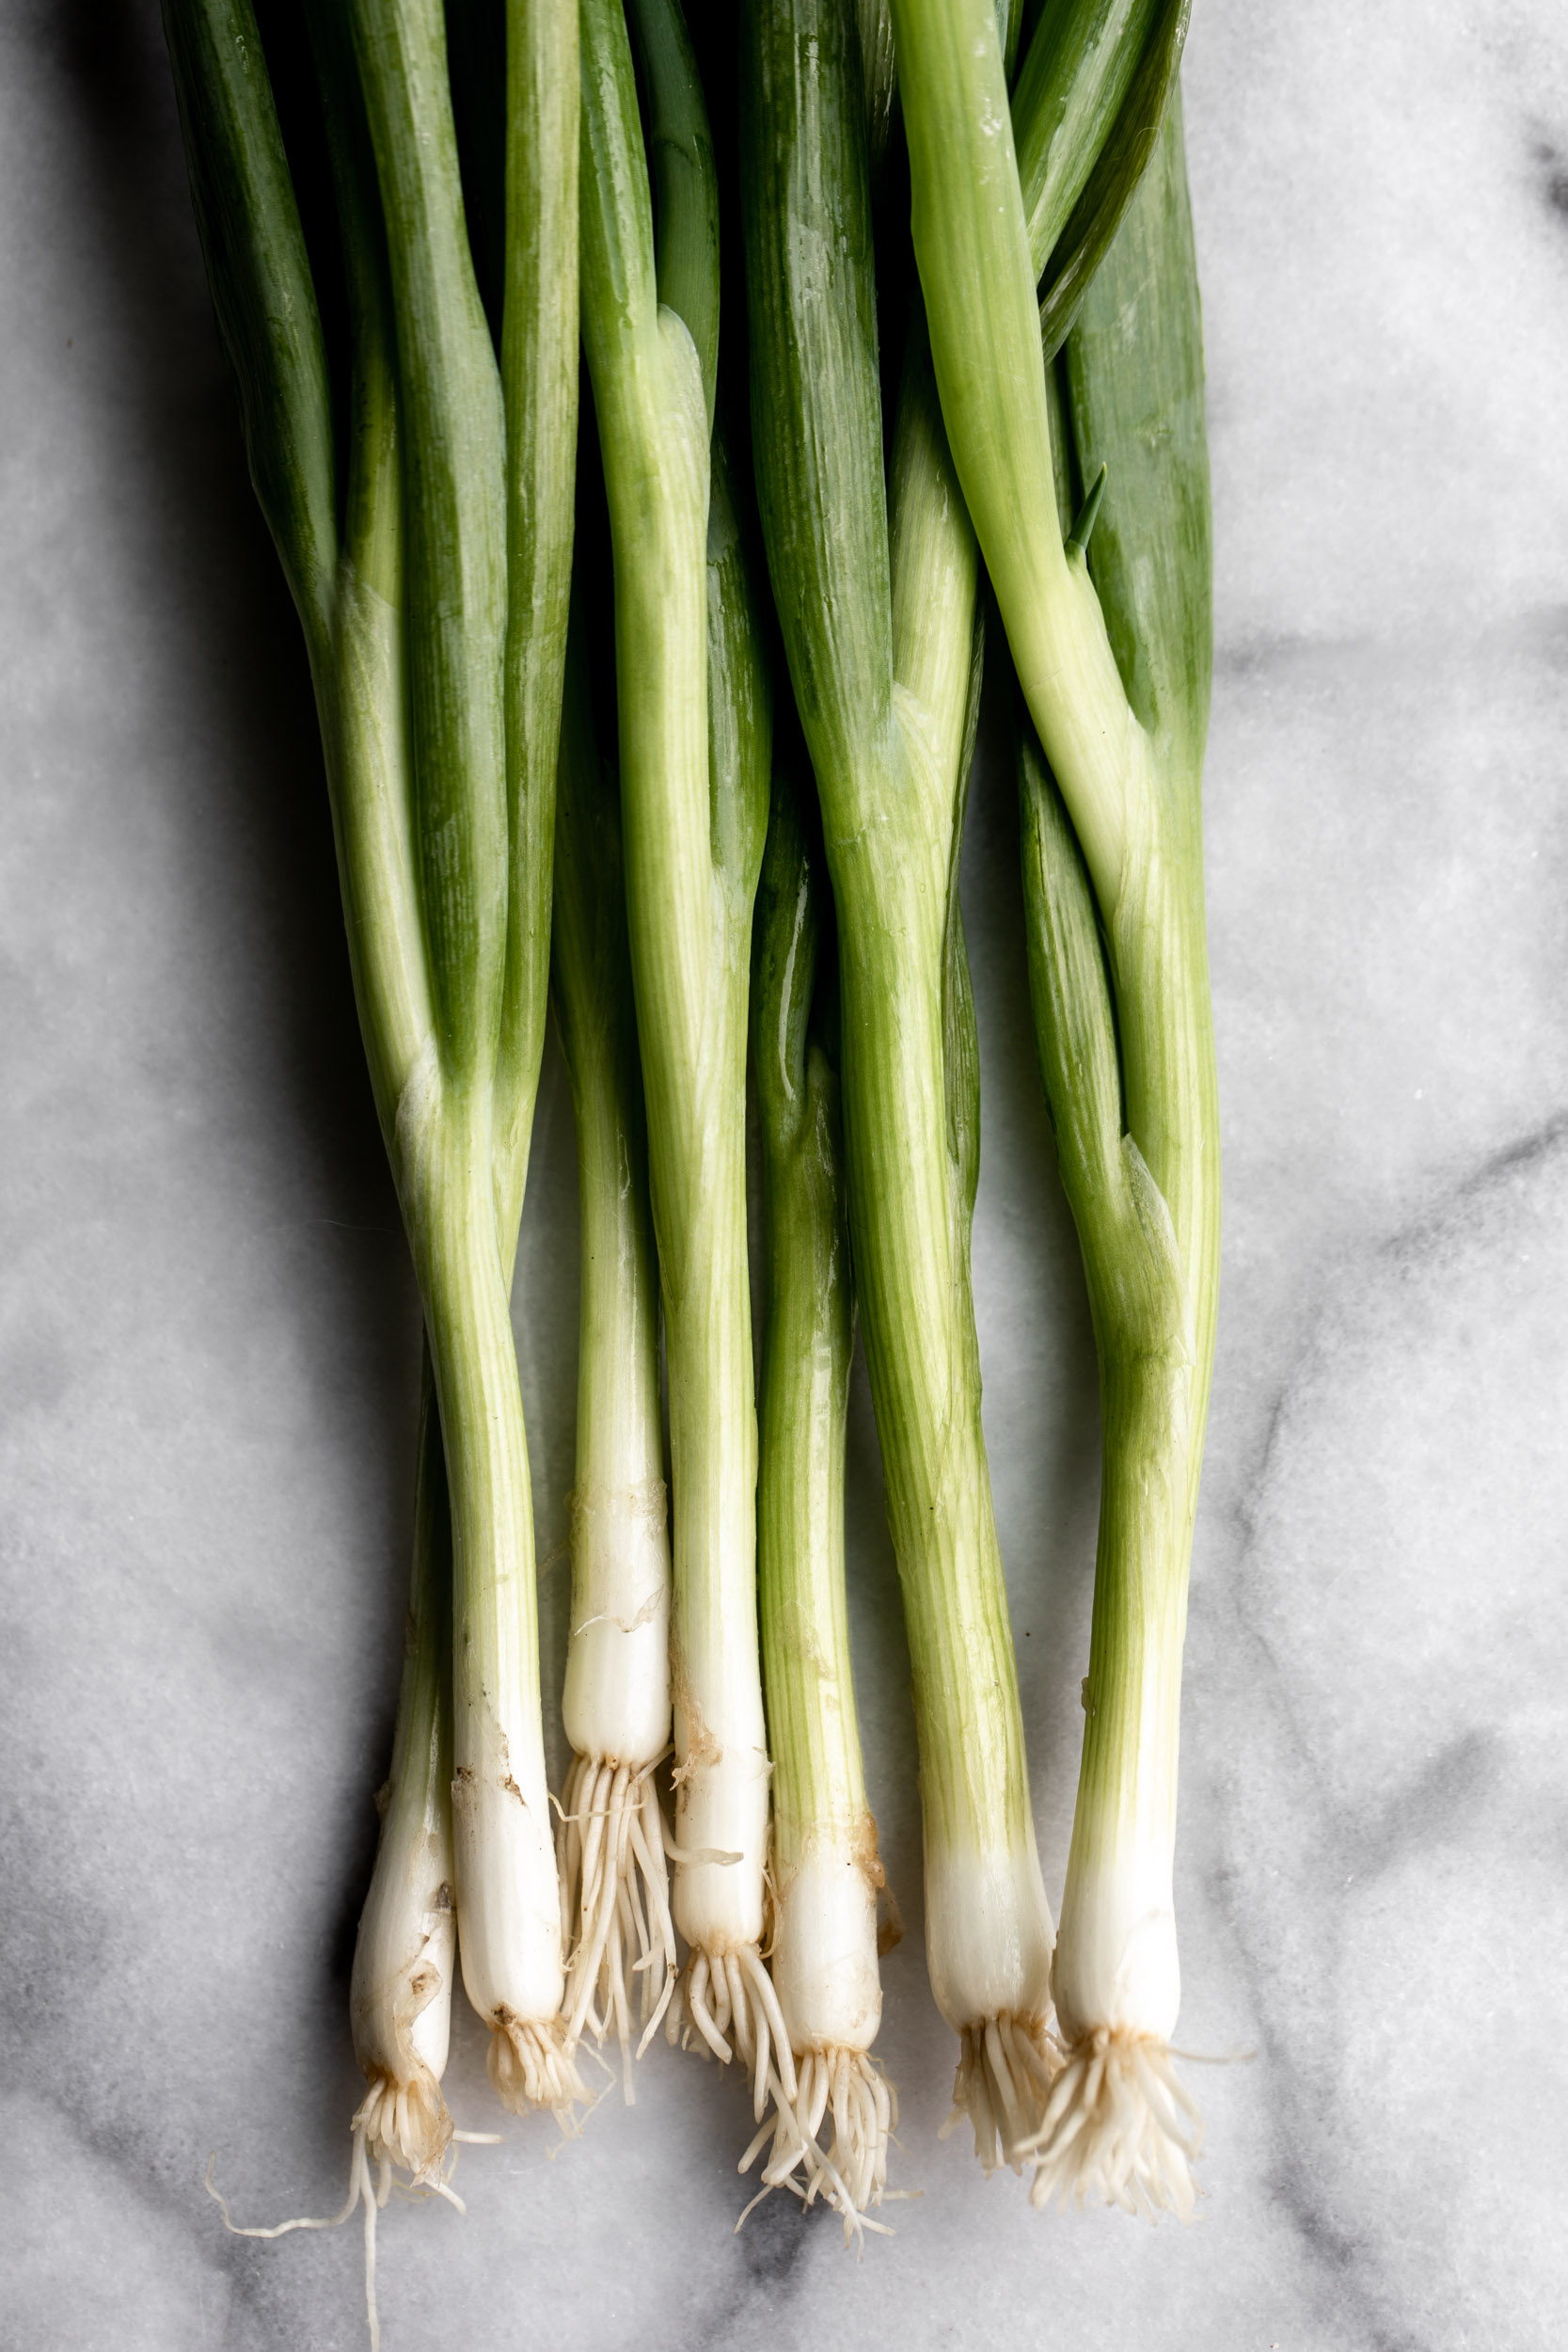 green onions bunched together on marble